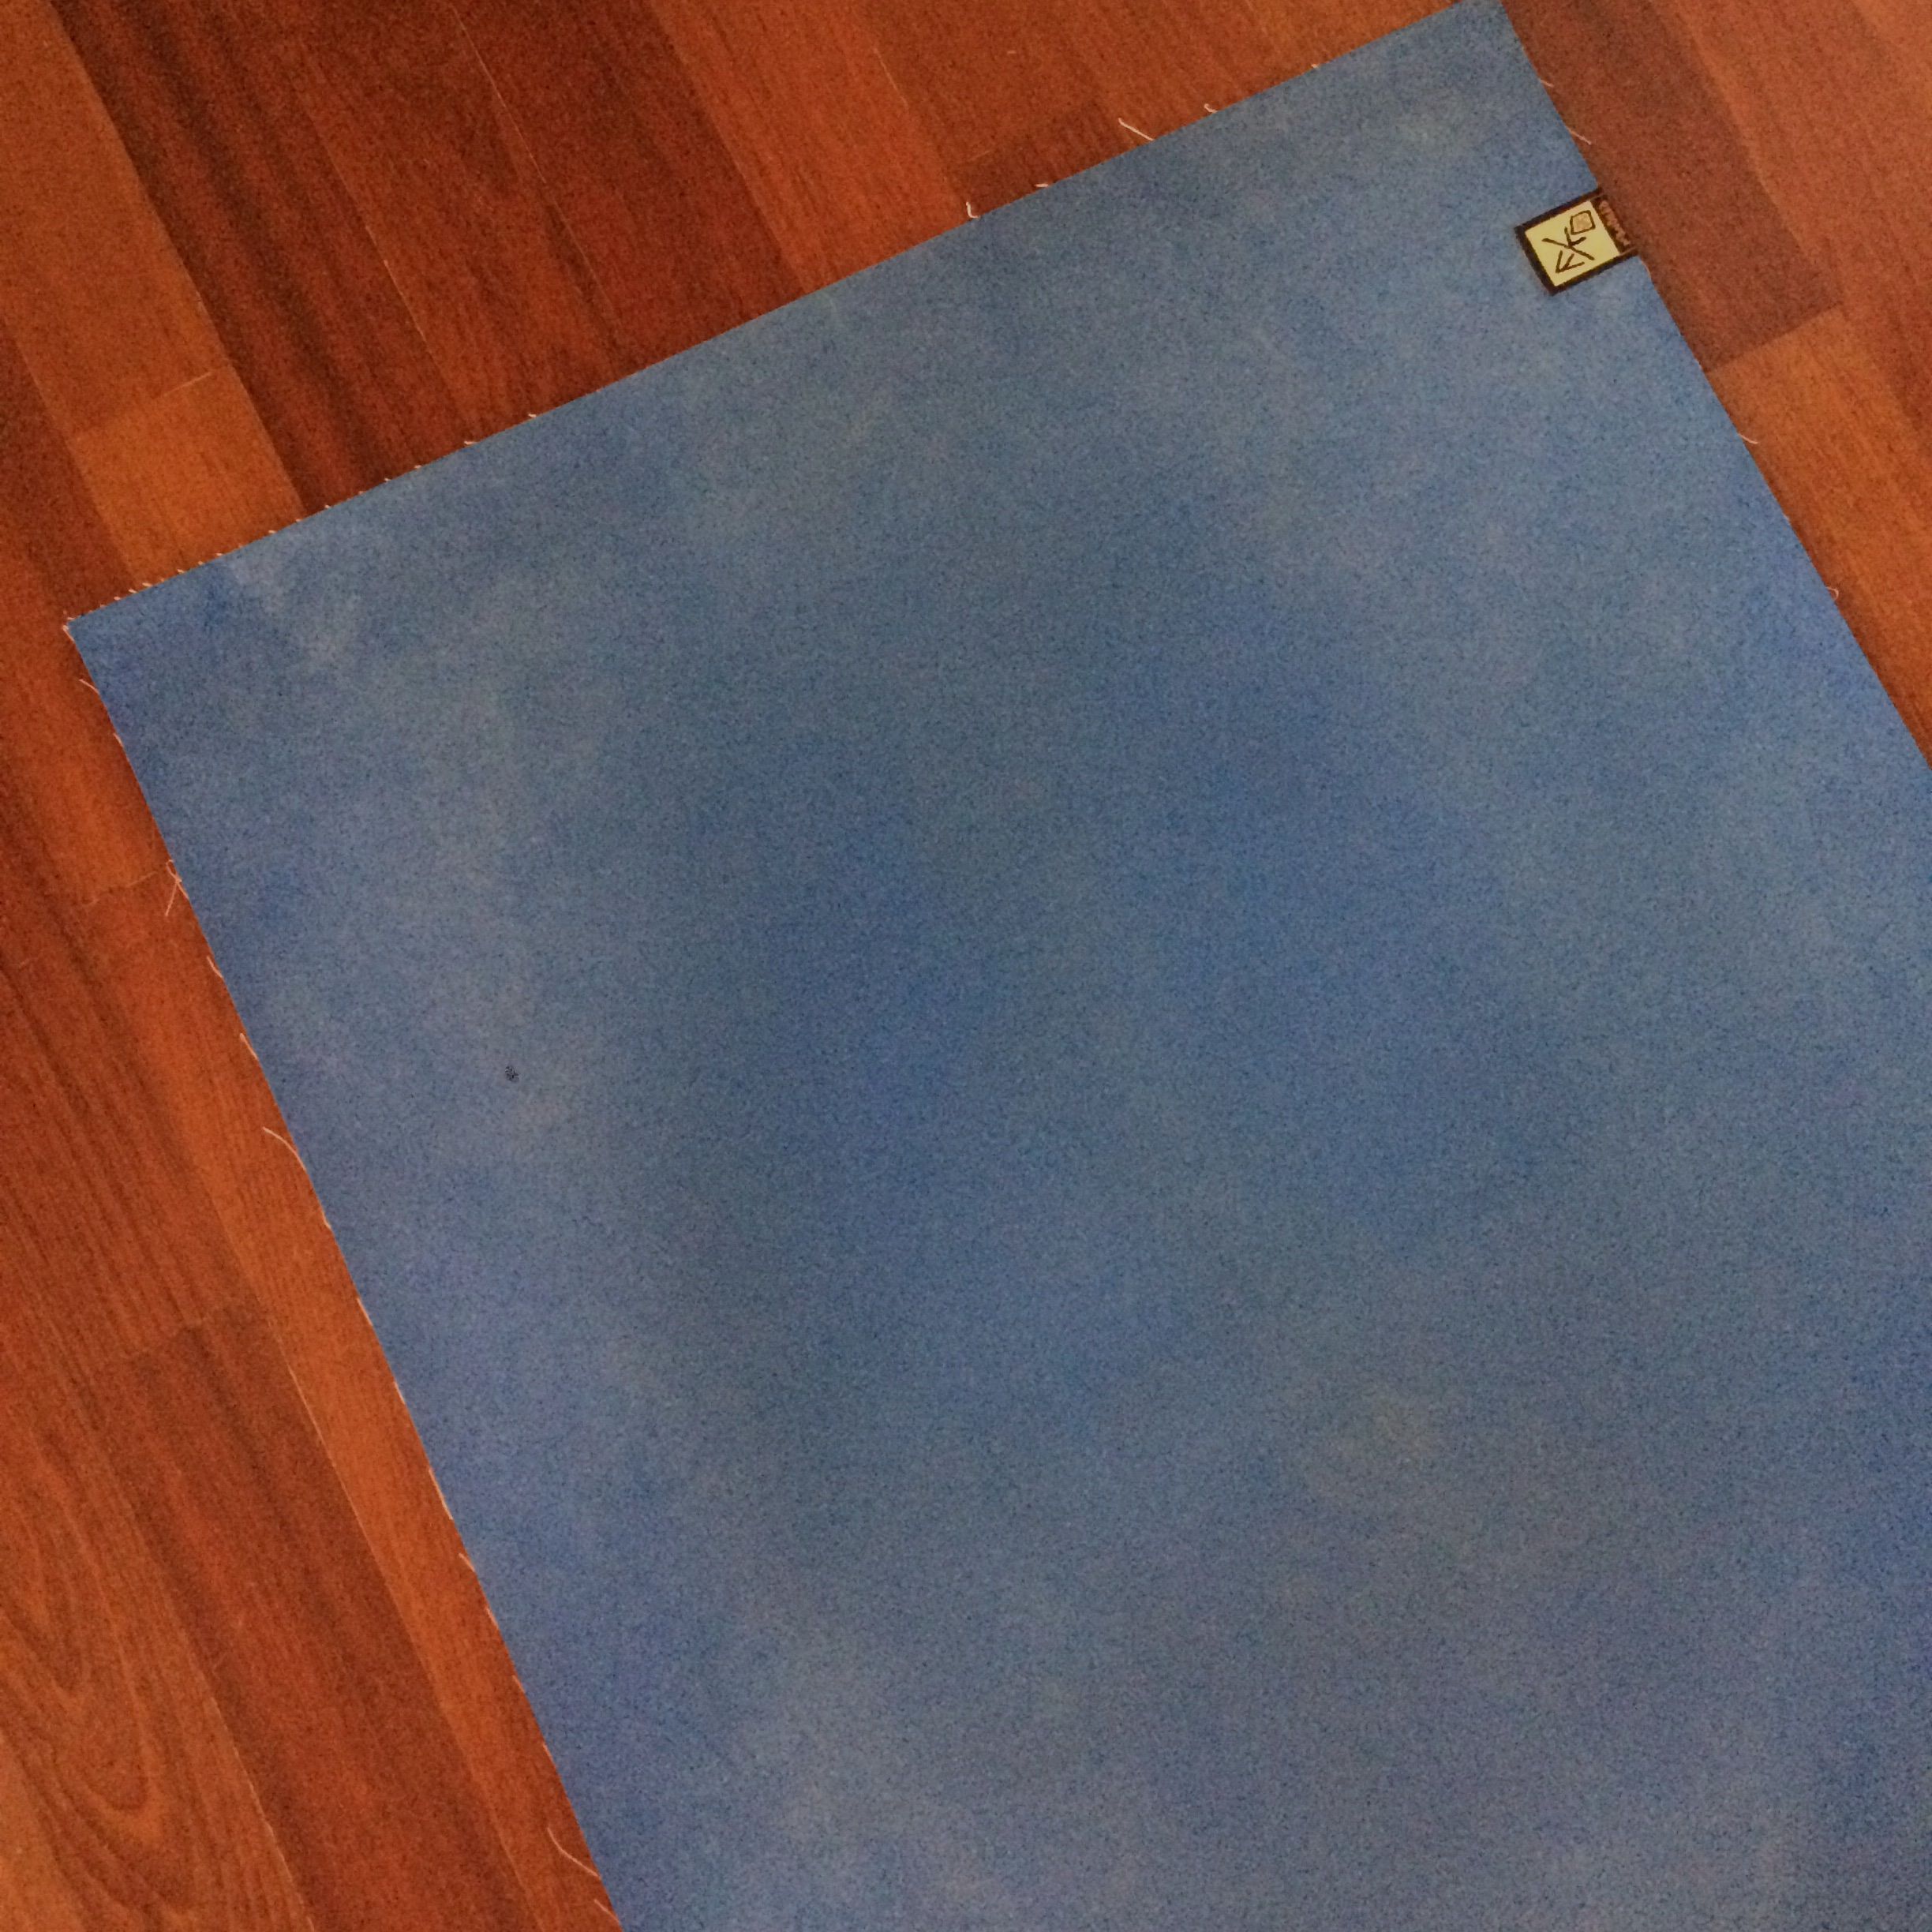 mat harmony yoga img helper healthy review jade